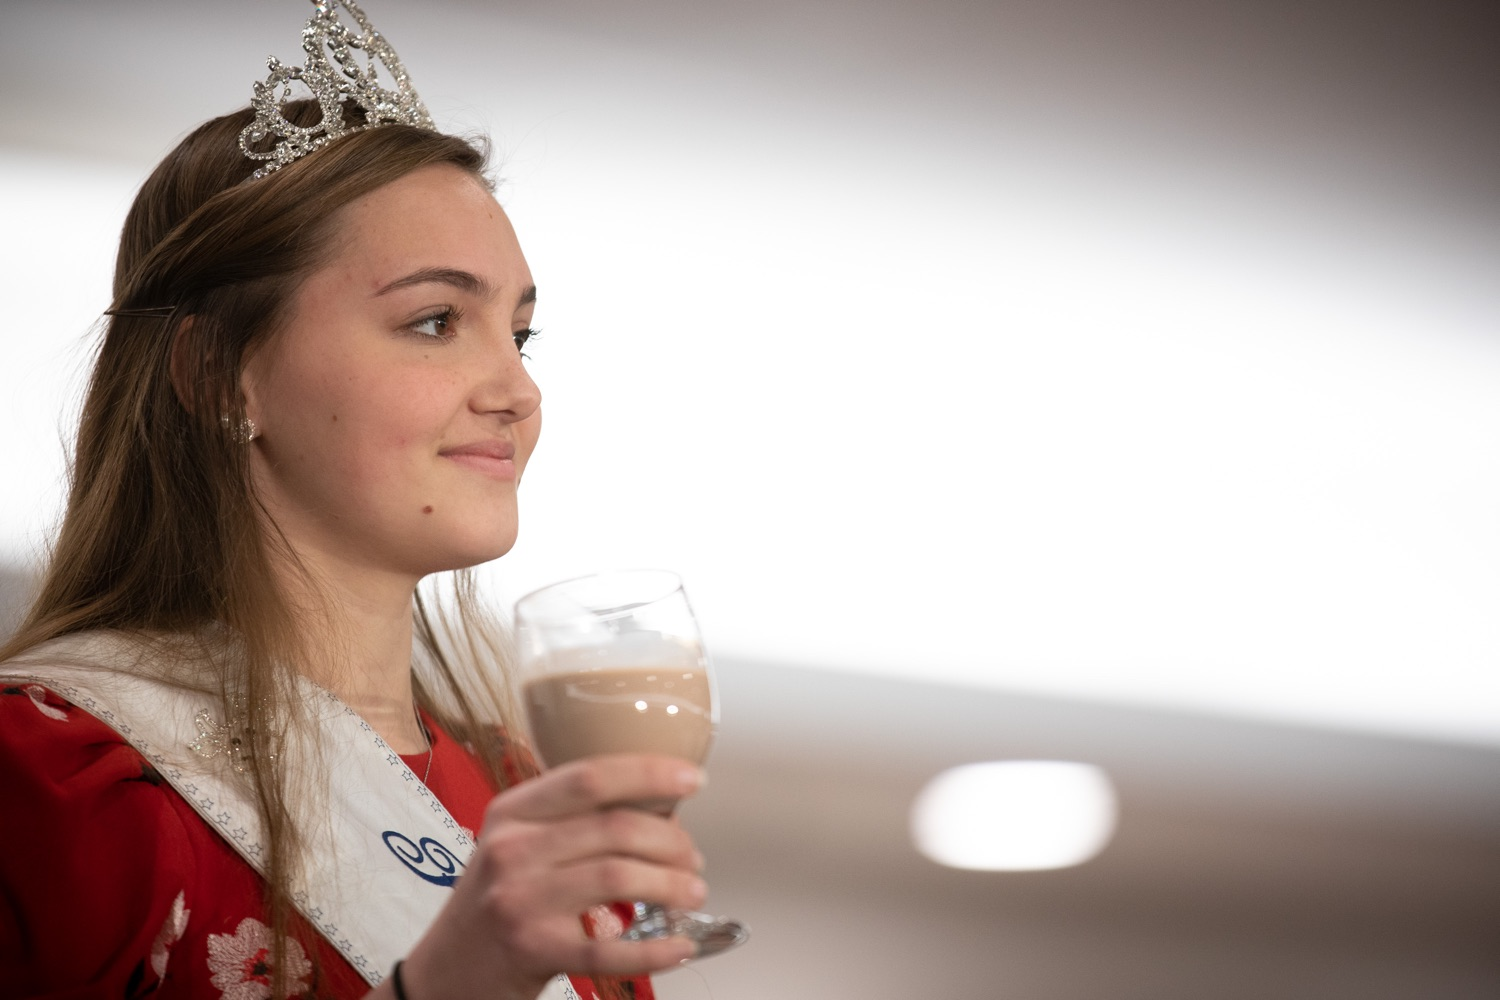 "<a href=""https://filesource.wostreaming.net/commonwealthofpa/photo/17650_agric_public_officials_day_dz_003.jpg"" target=""_blank"">⇣ Download Photo<br></a>Paige Peiffer PA Dairy Princess offering up the Milk Toast at Public Officials Day.  Addressing nearly 800 public officials at the Pennsylvania Farm Show today, Agriculture Secretary Russell Redding announced the opening of the last grant program made possible by the 2019 PA Farm Bill. The $1 million Farm Vitality Grant Program aims to enhance the long-term health and vitality of Pennsylvanias family farms. Harrisburg, PA  January 08, 2020"